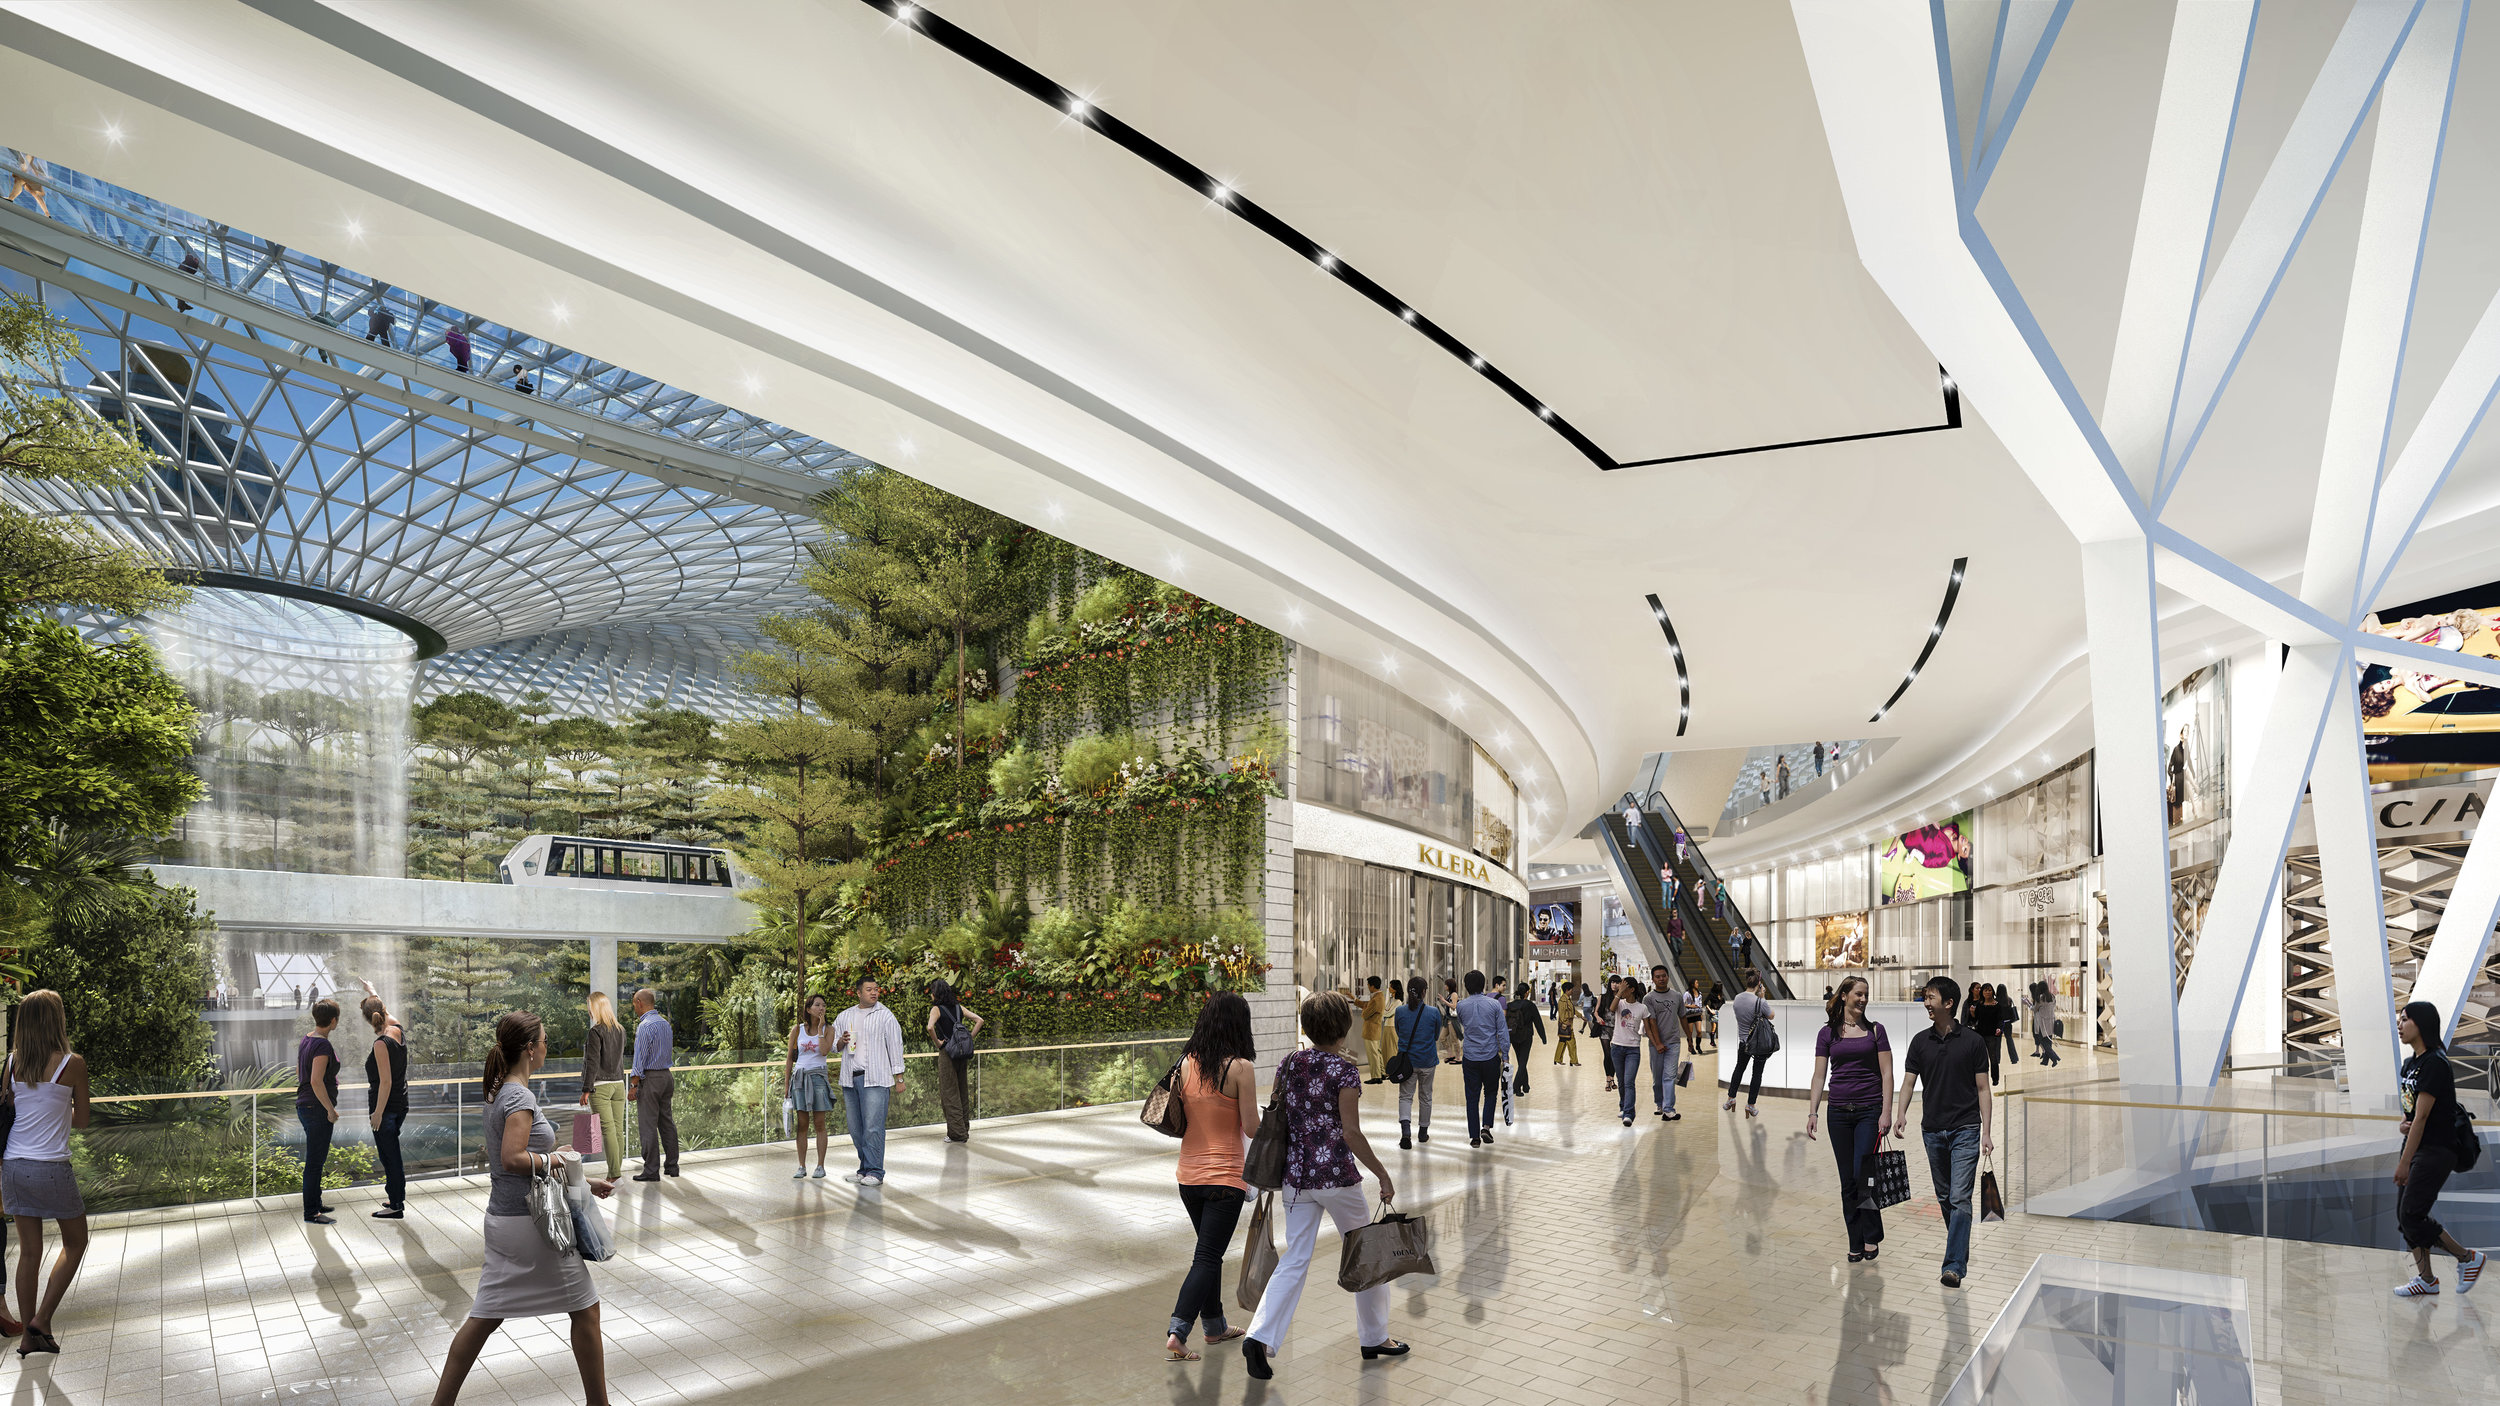 rendering_A world-class retail experience at Jewel Changi Airport.jpg